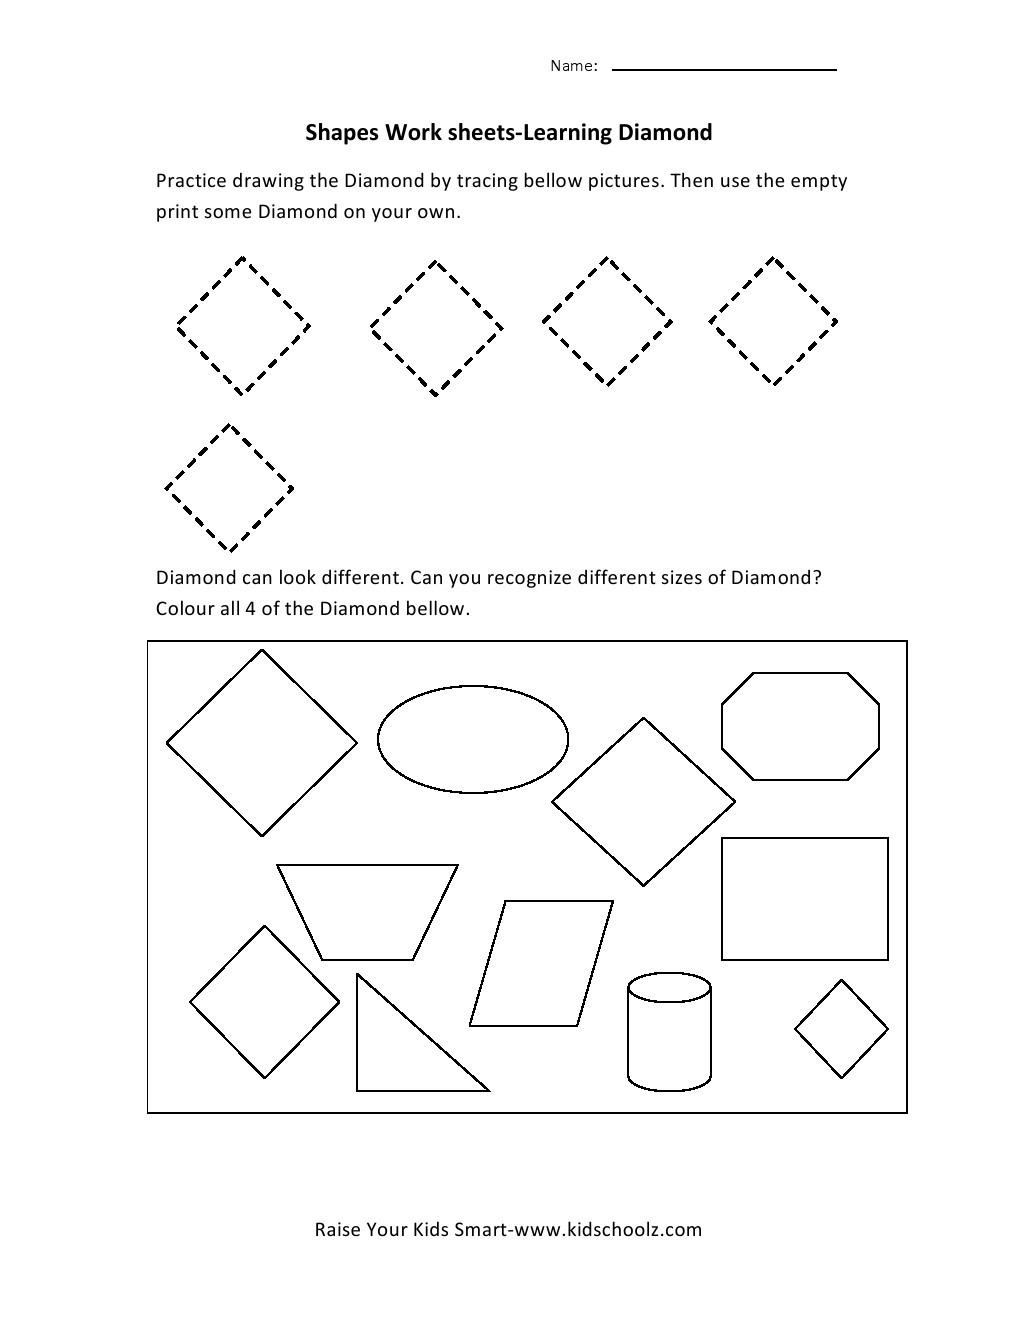 Diamond Worksheets for Preschool Learning Shapes Worksheets Diamond Kidschoolz